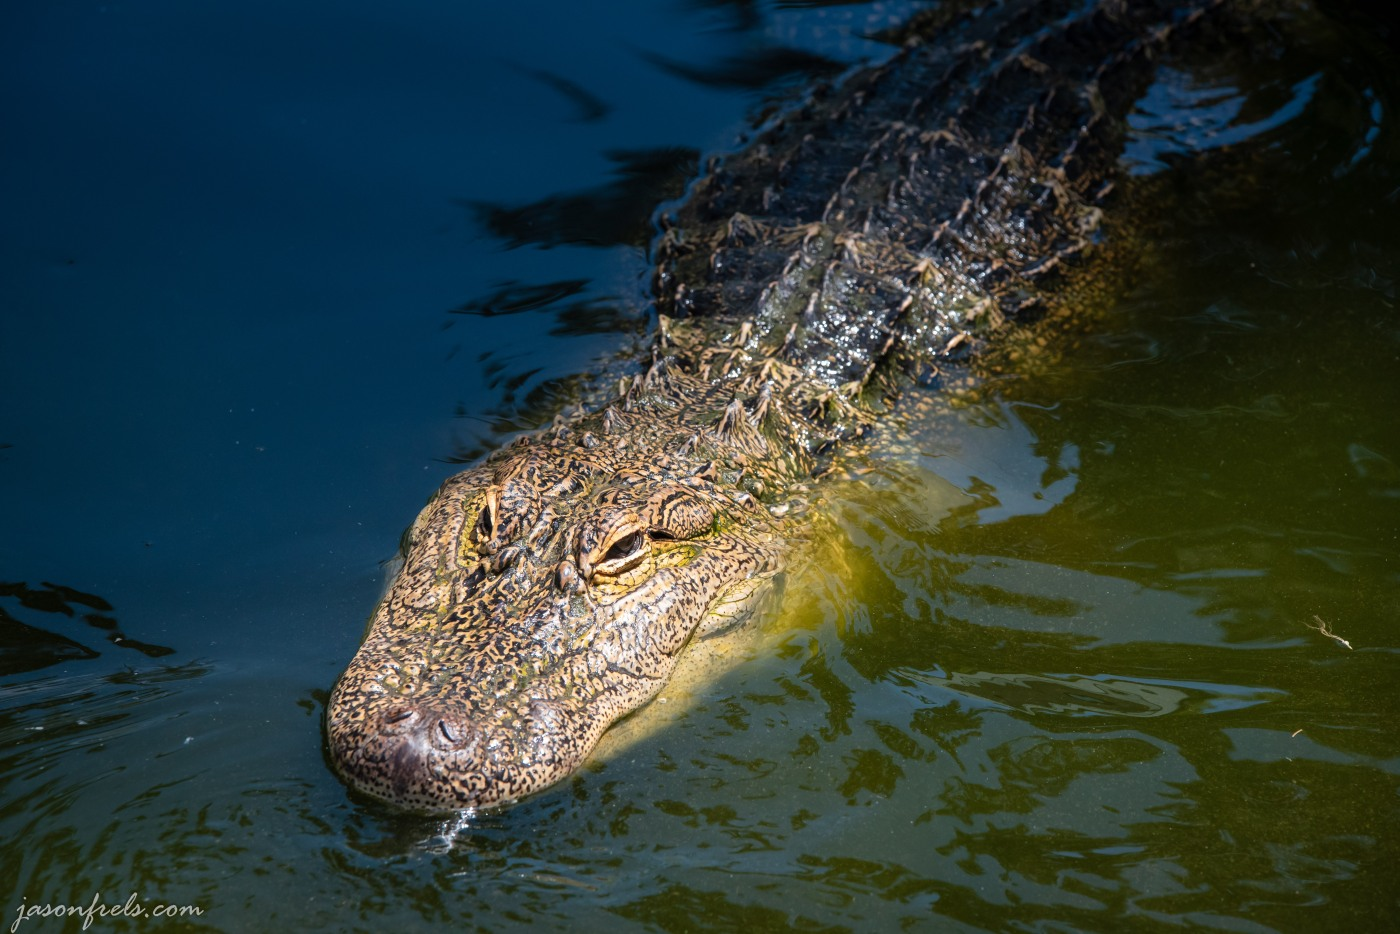 Close-up of a captive alligator in Hot Springs Arkansas